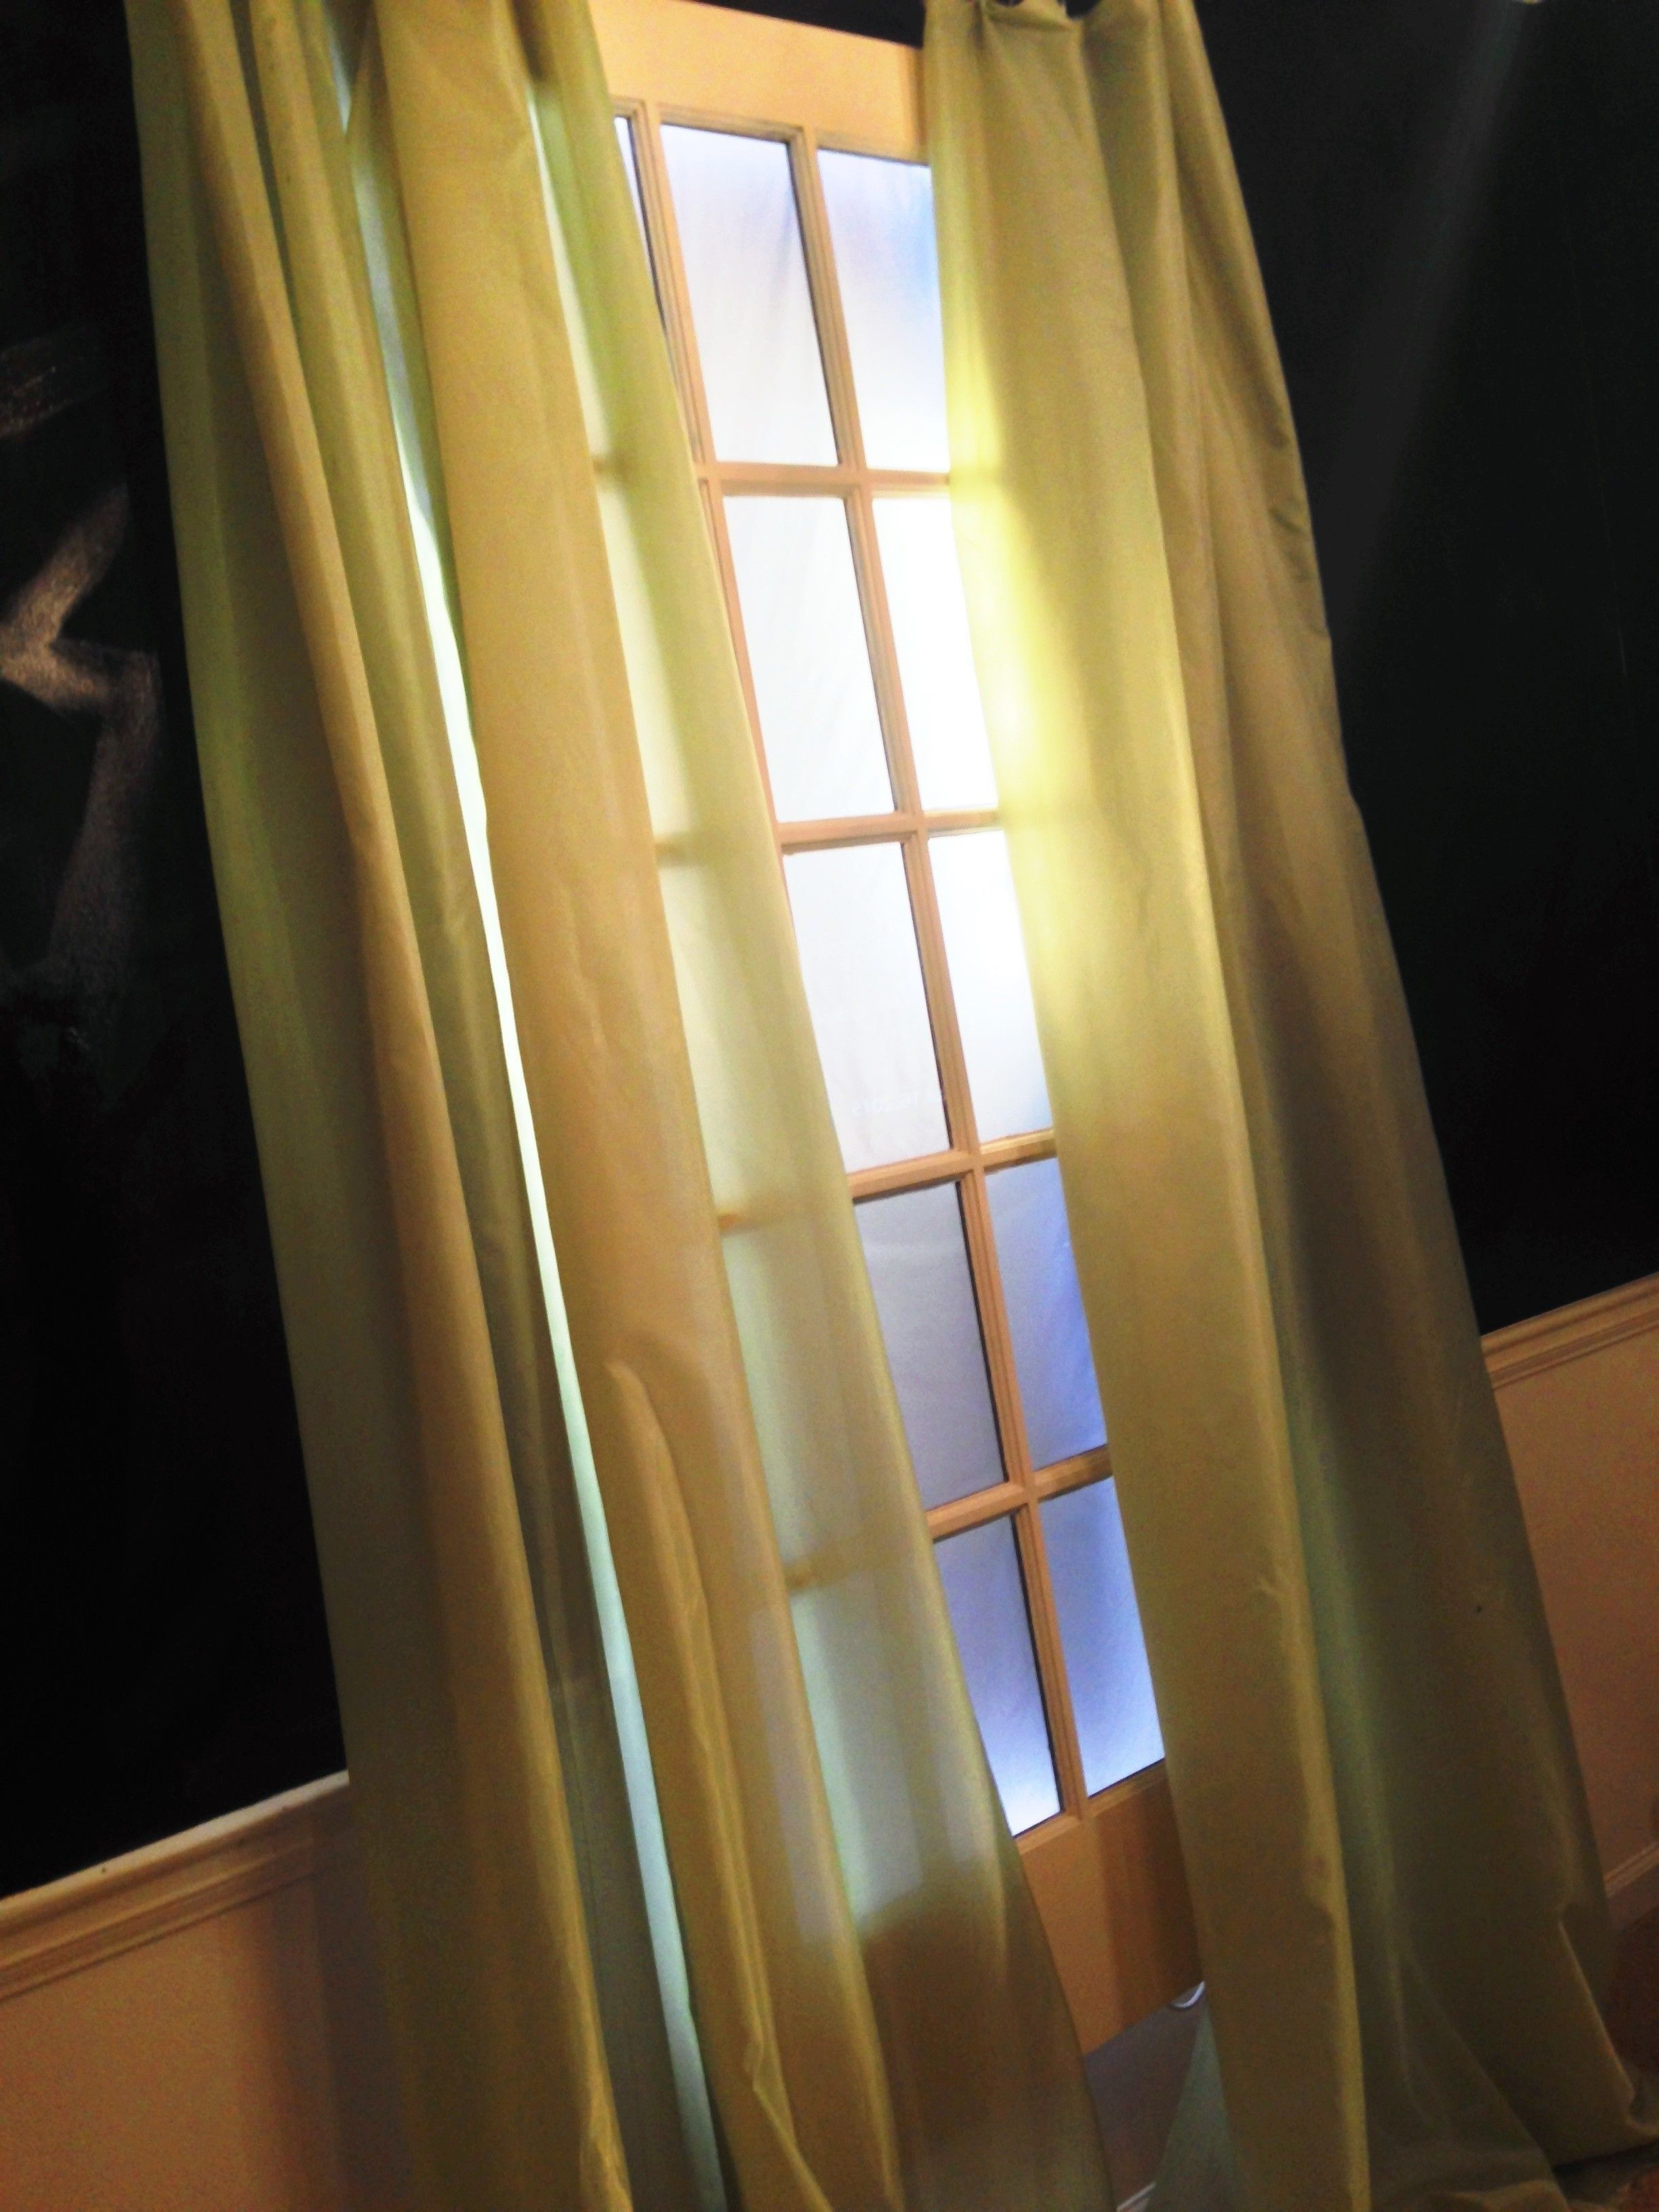 Fake Window With Artificial Sunlight Projects To Try